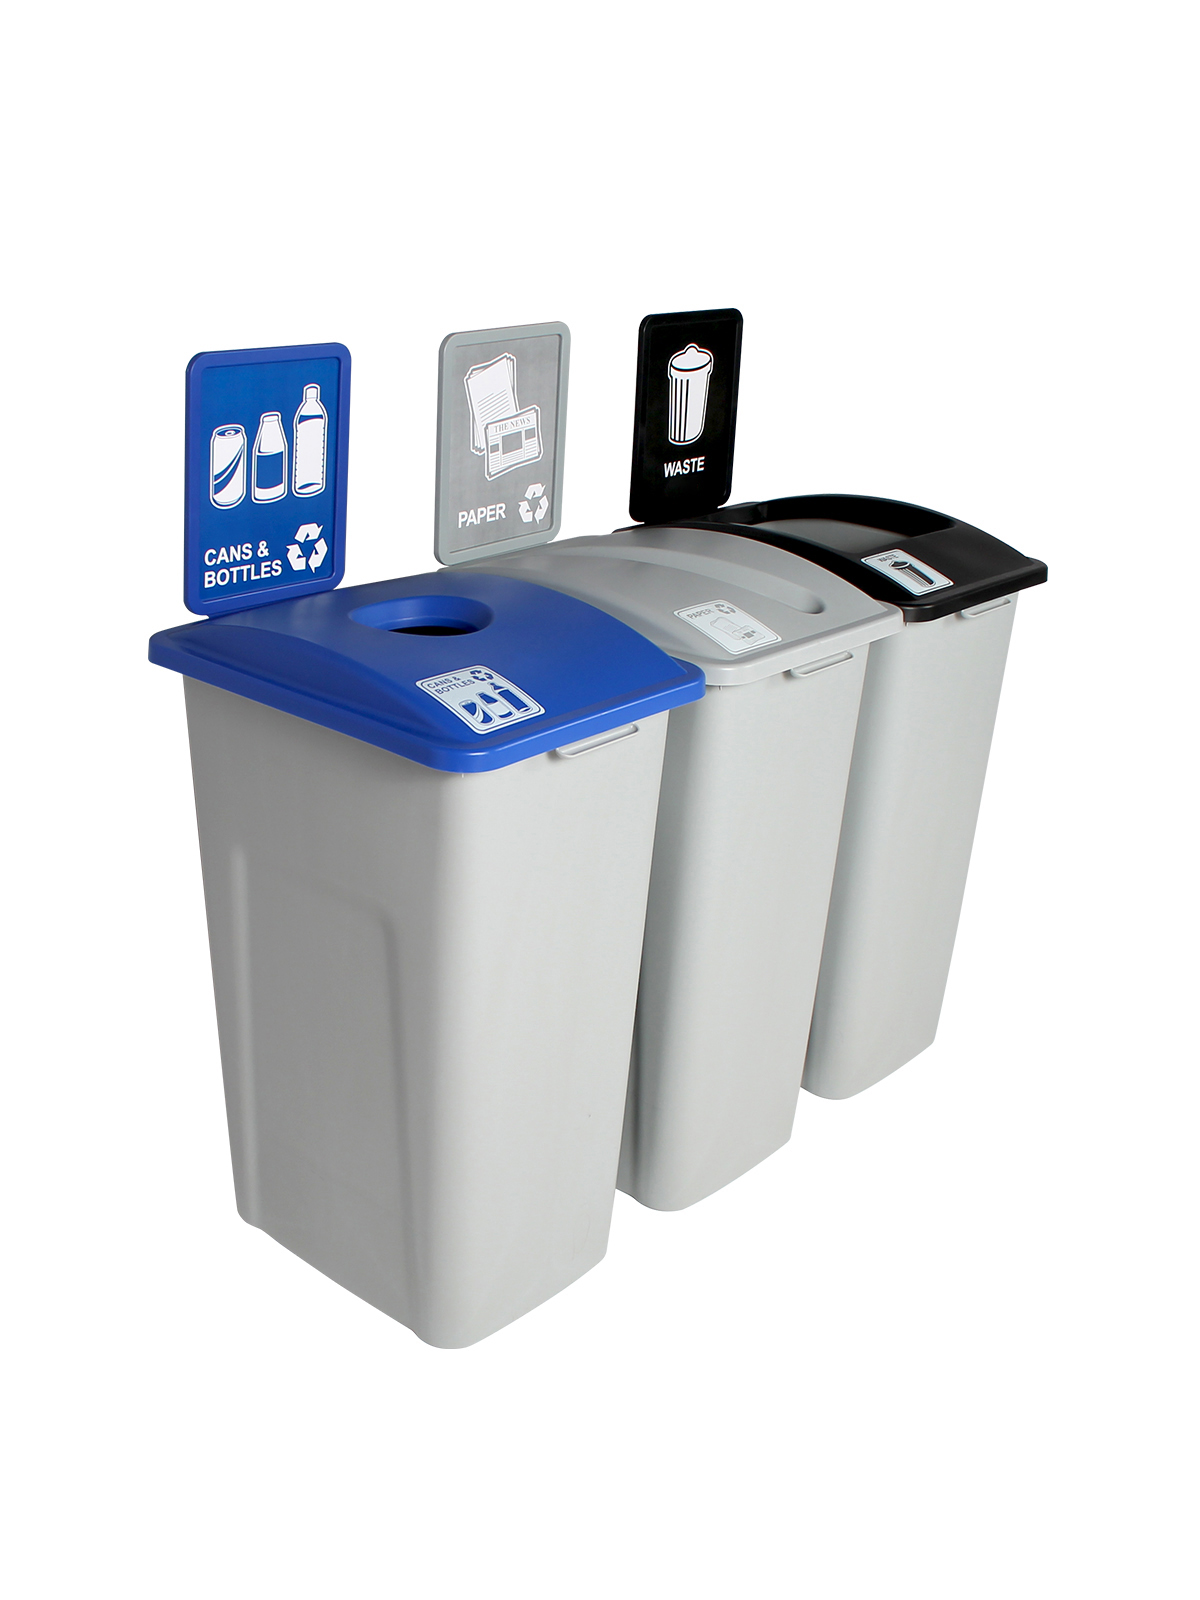 WASTE WATCHER XL - Triple - Cans & Bottles-Paper-Waste - Circle-Slot-Full - Grey-Blue-Grey-Black